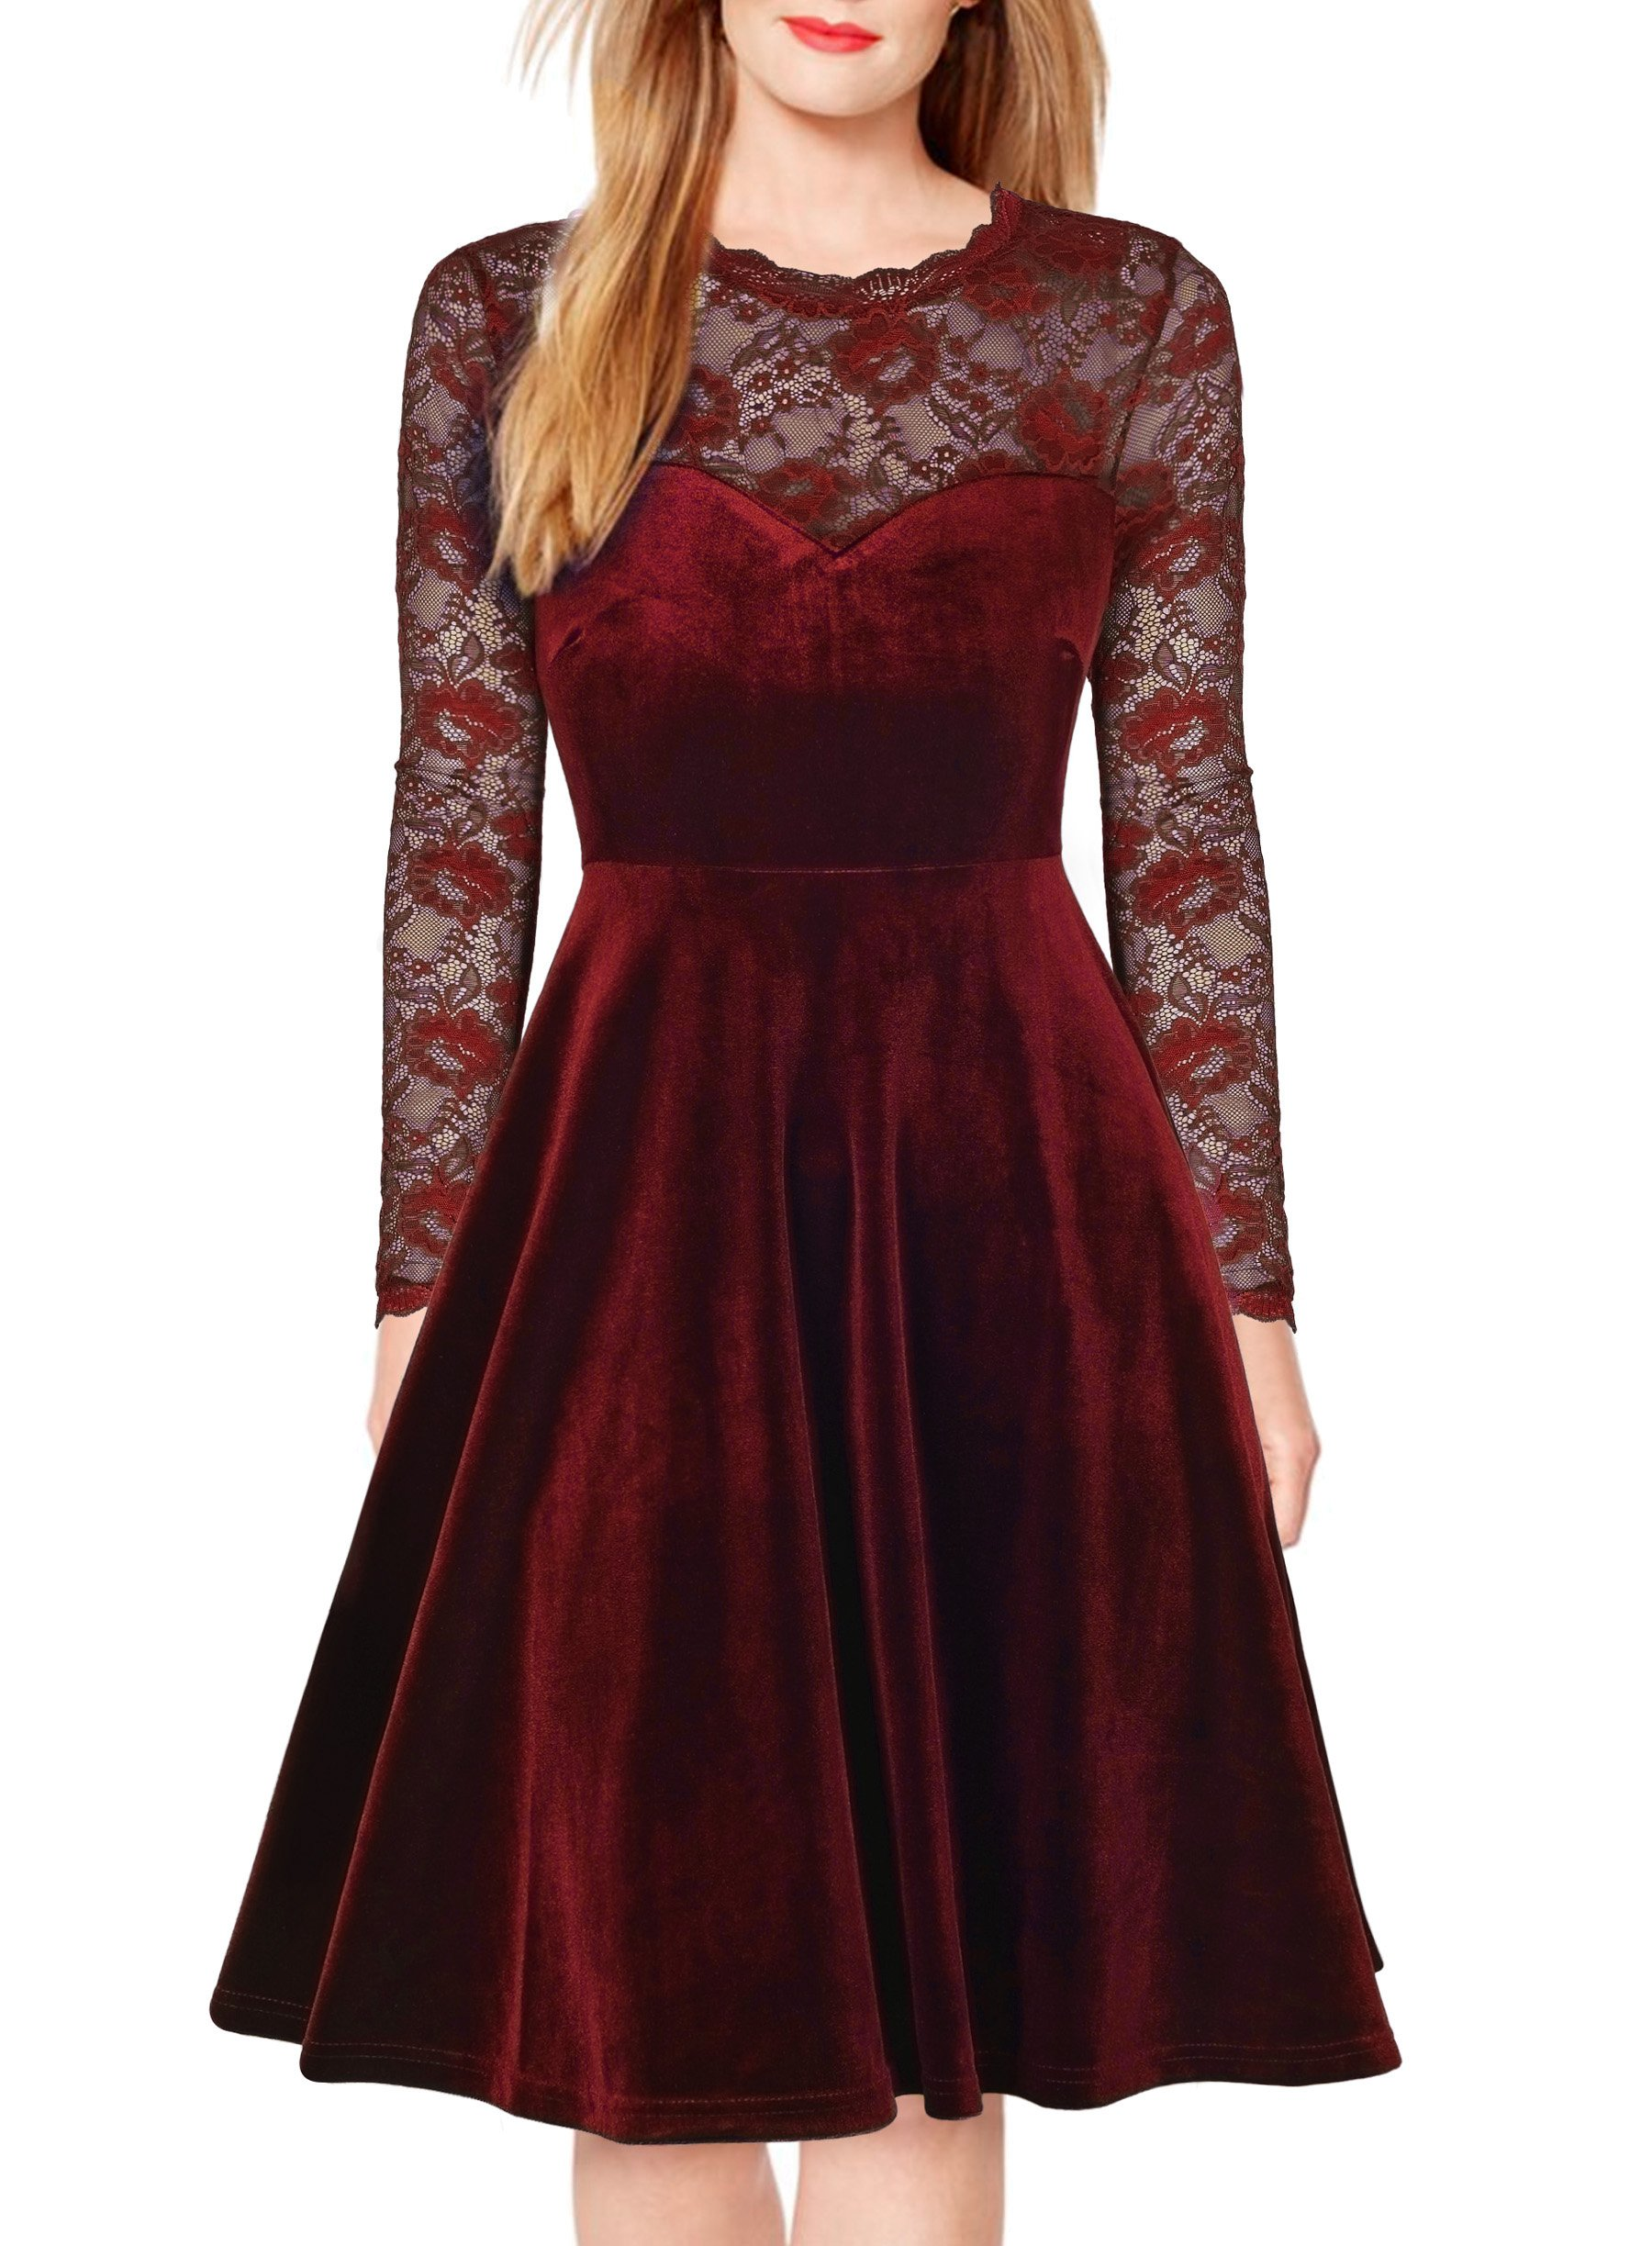 FORTRIC Women Vintage Floral Lace Long Sleeve Cocktail Party Formal Swing Dress Burgundy M